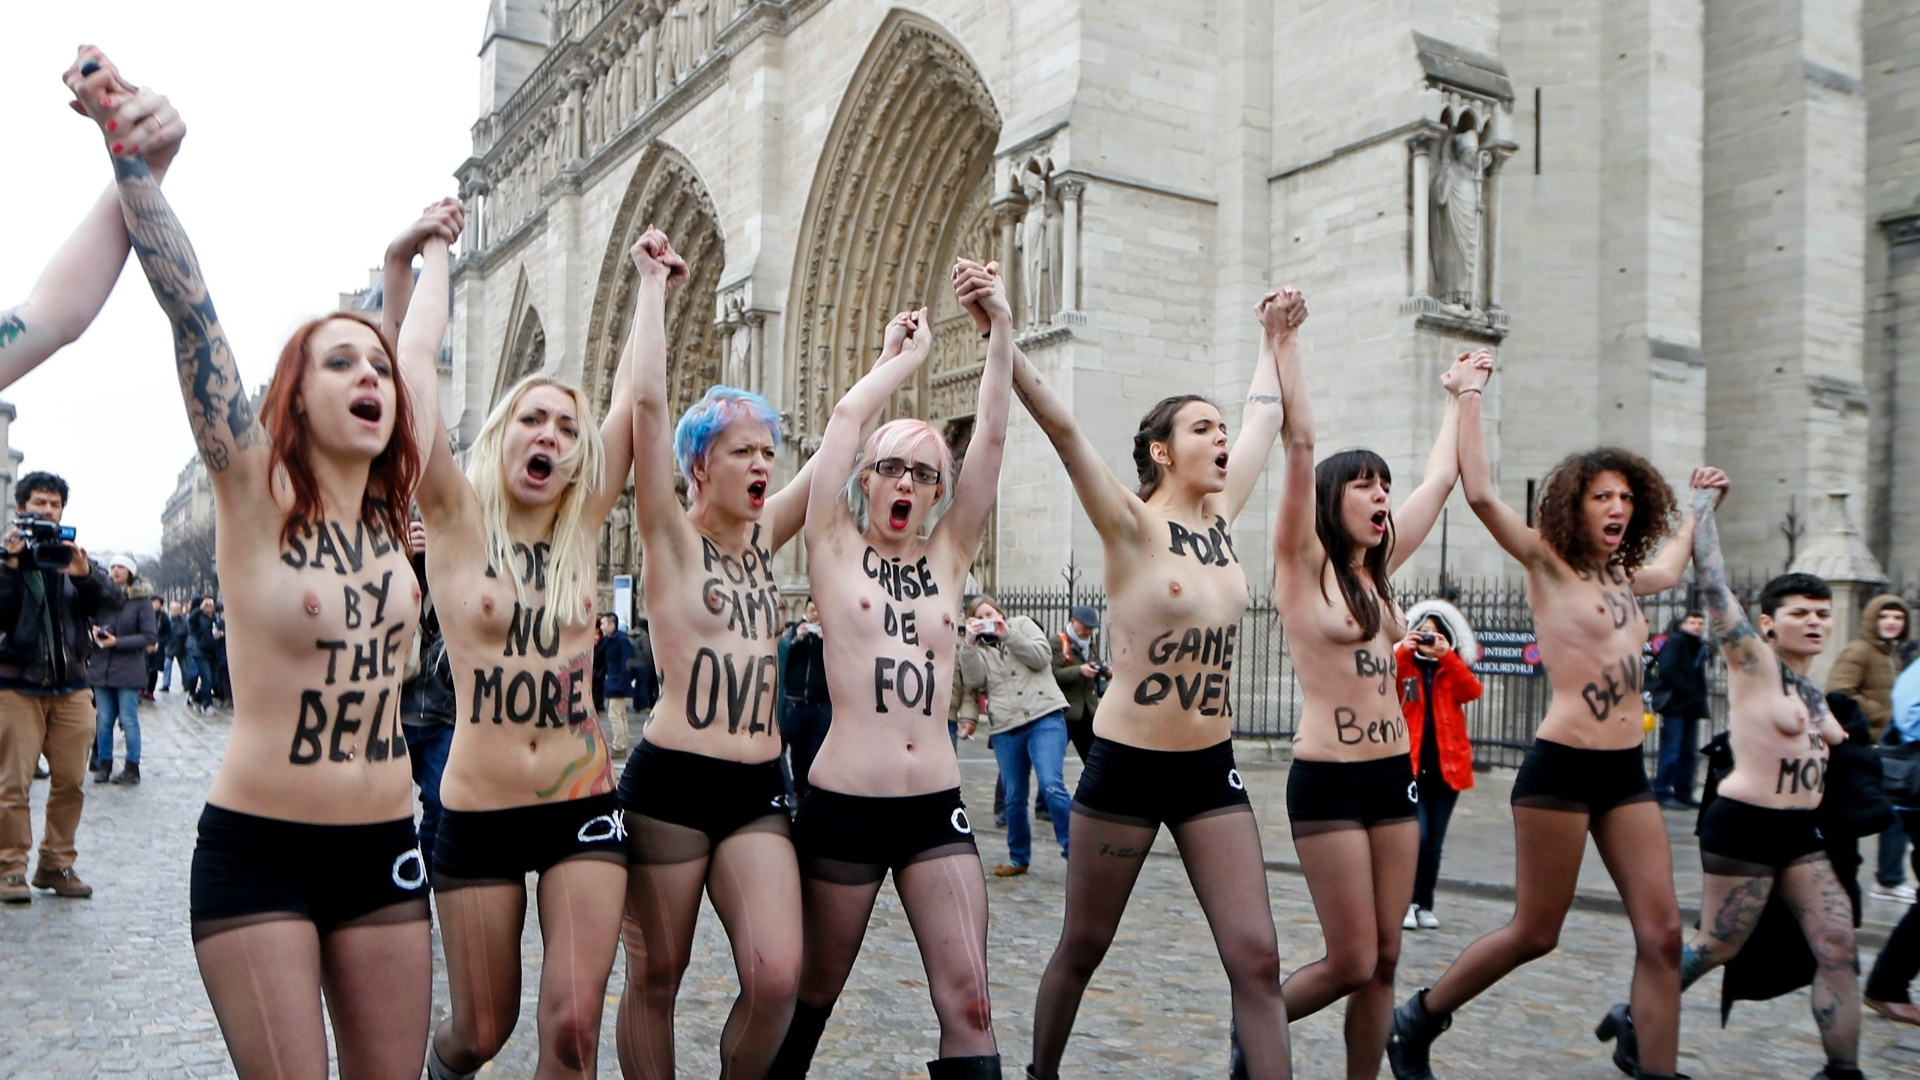 12.fev.2013 - Ativistas do Femen protestam em frente  Catedral de Notre-Dame, em Paris (Frana), para celebrar a renncia do papa Bento 16 e a deciso do Parlamento francs de aprovar proposta de lei que permite o casamento homossexual